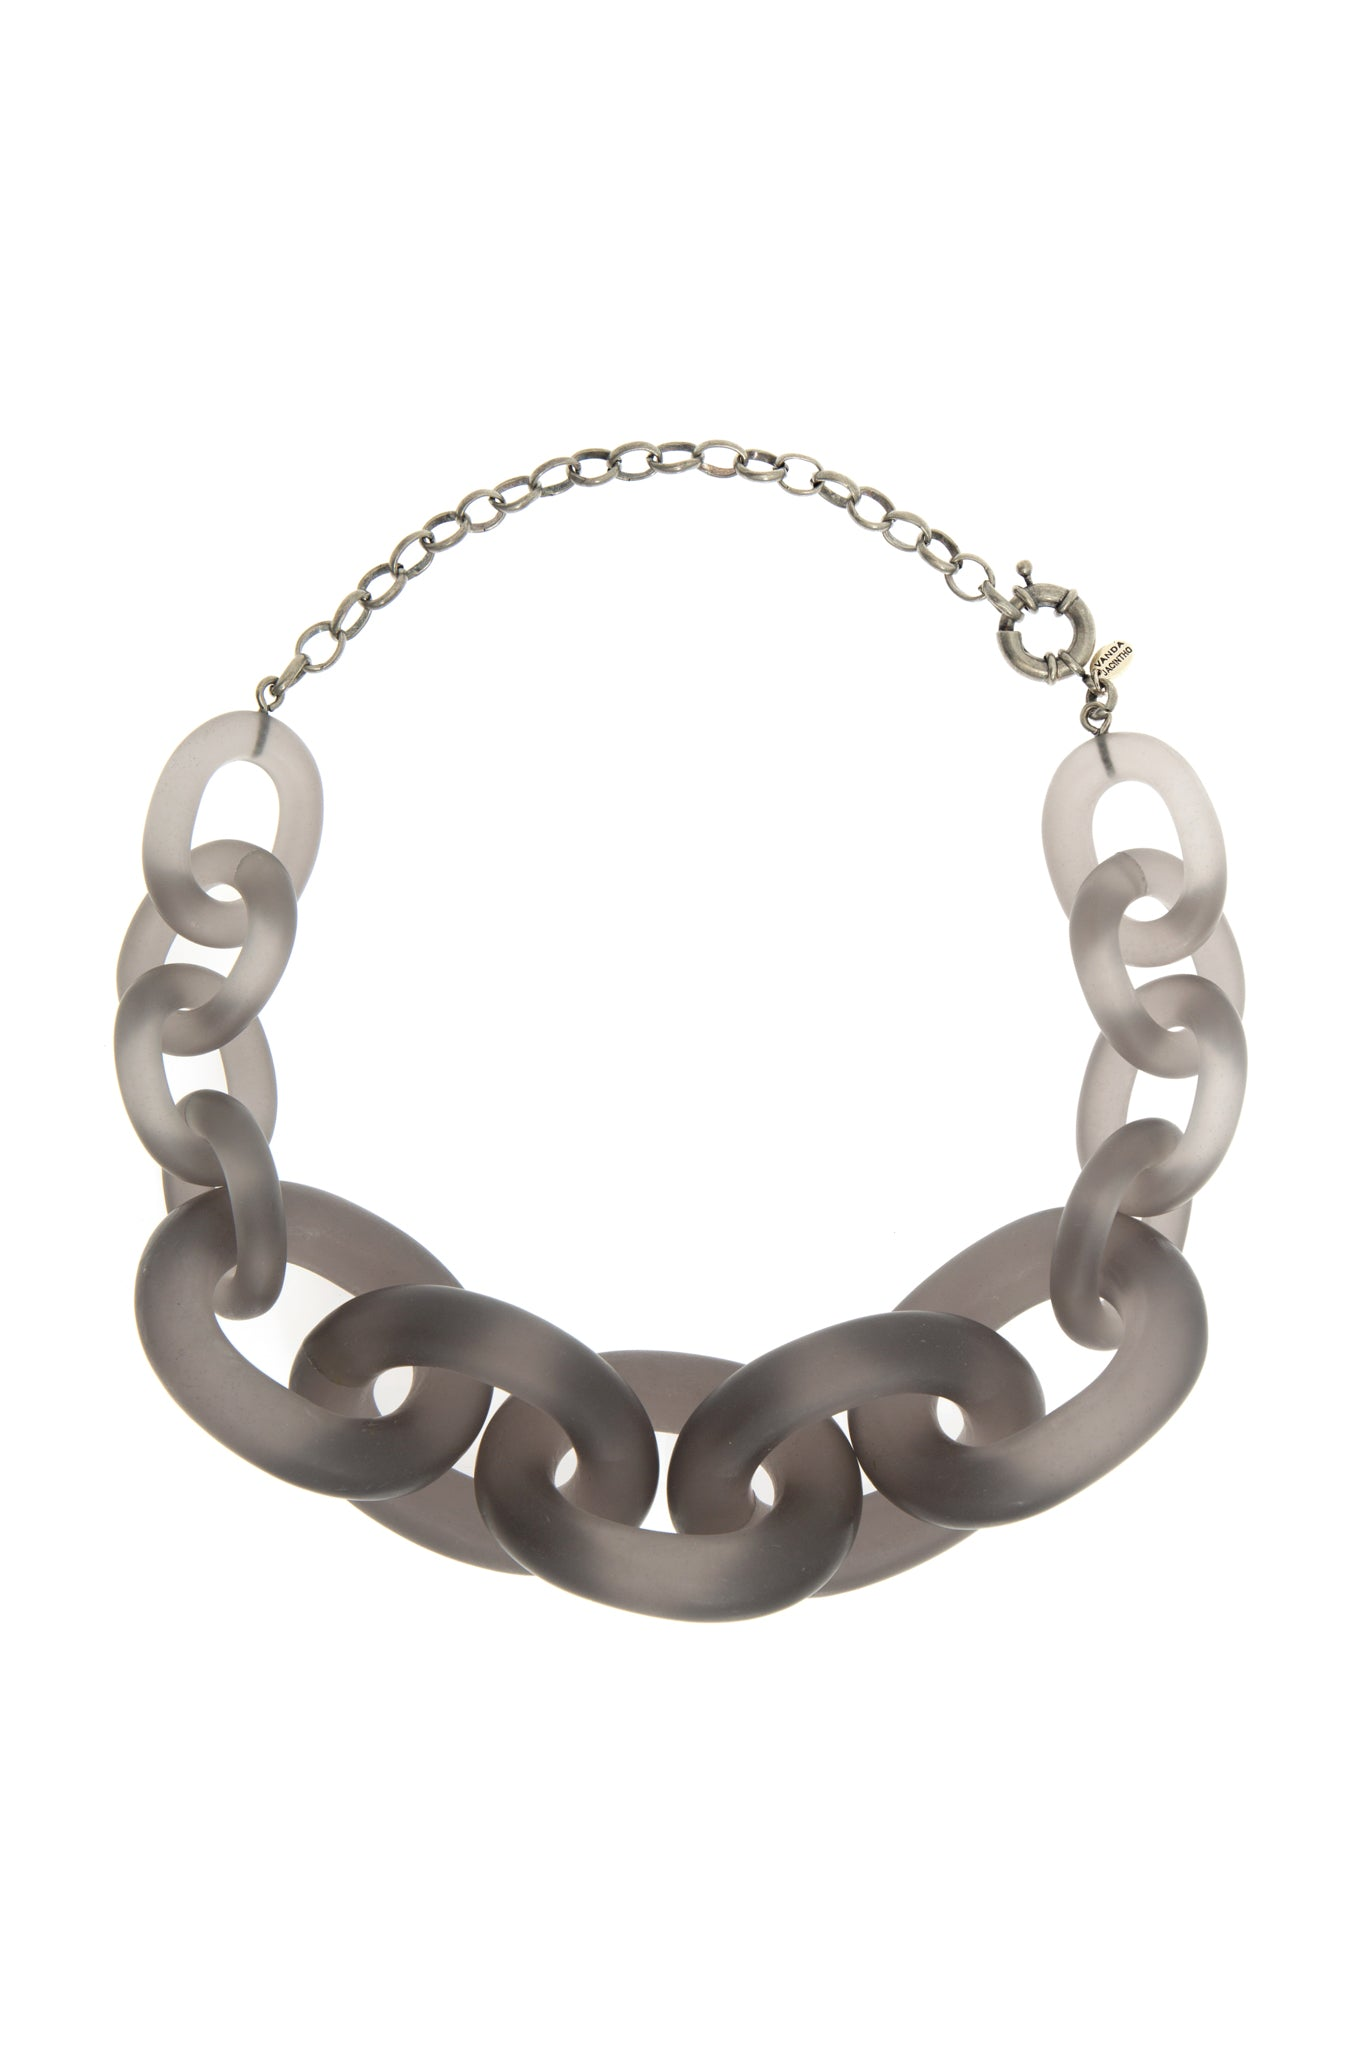 GREY CHAIN CHOCKER